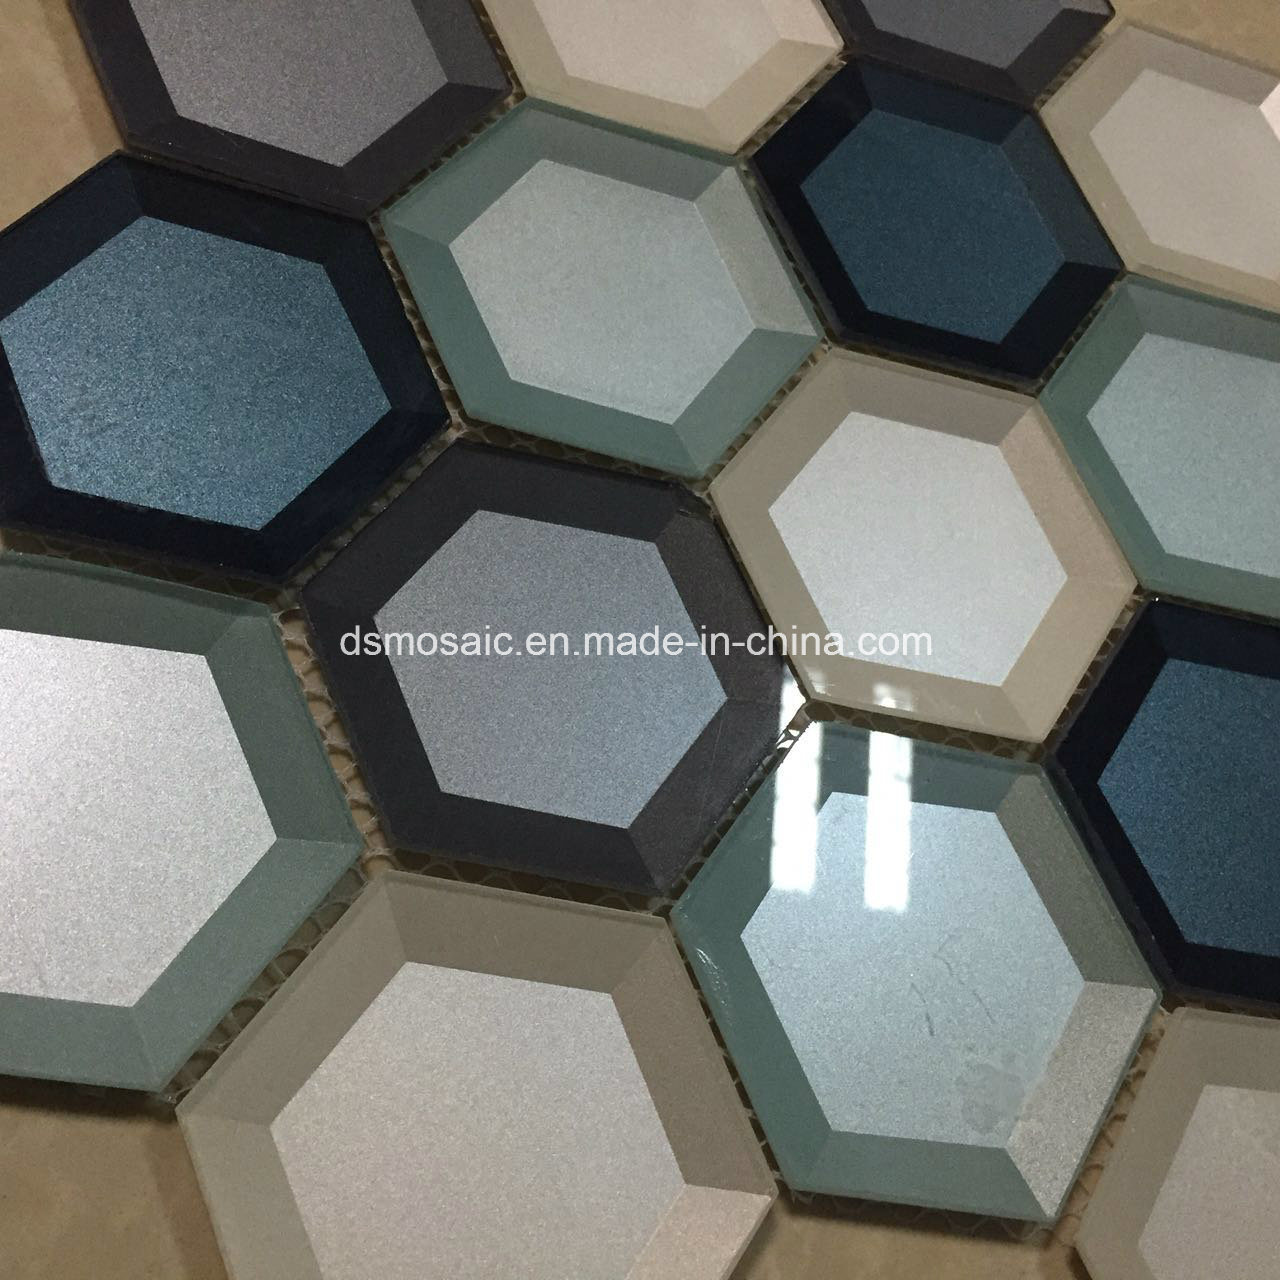 Newesf Colorful Edged Hexagon Glass Mosaic Tile